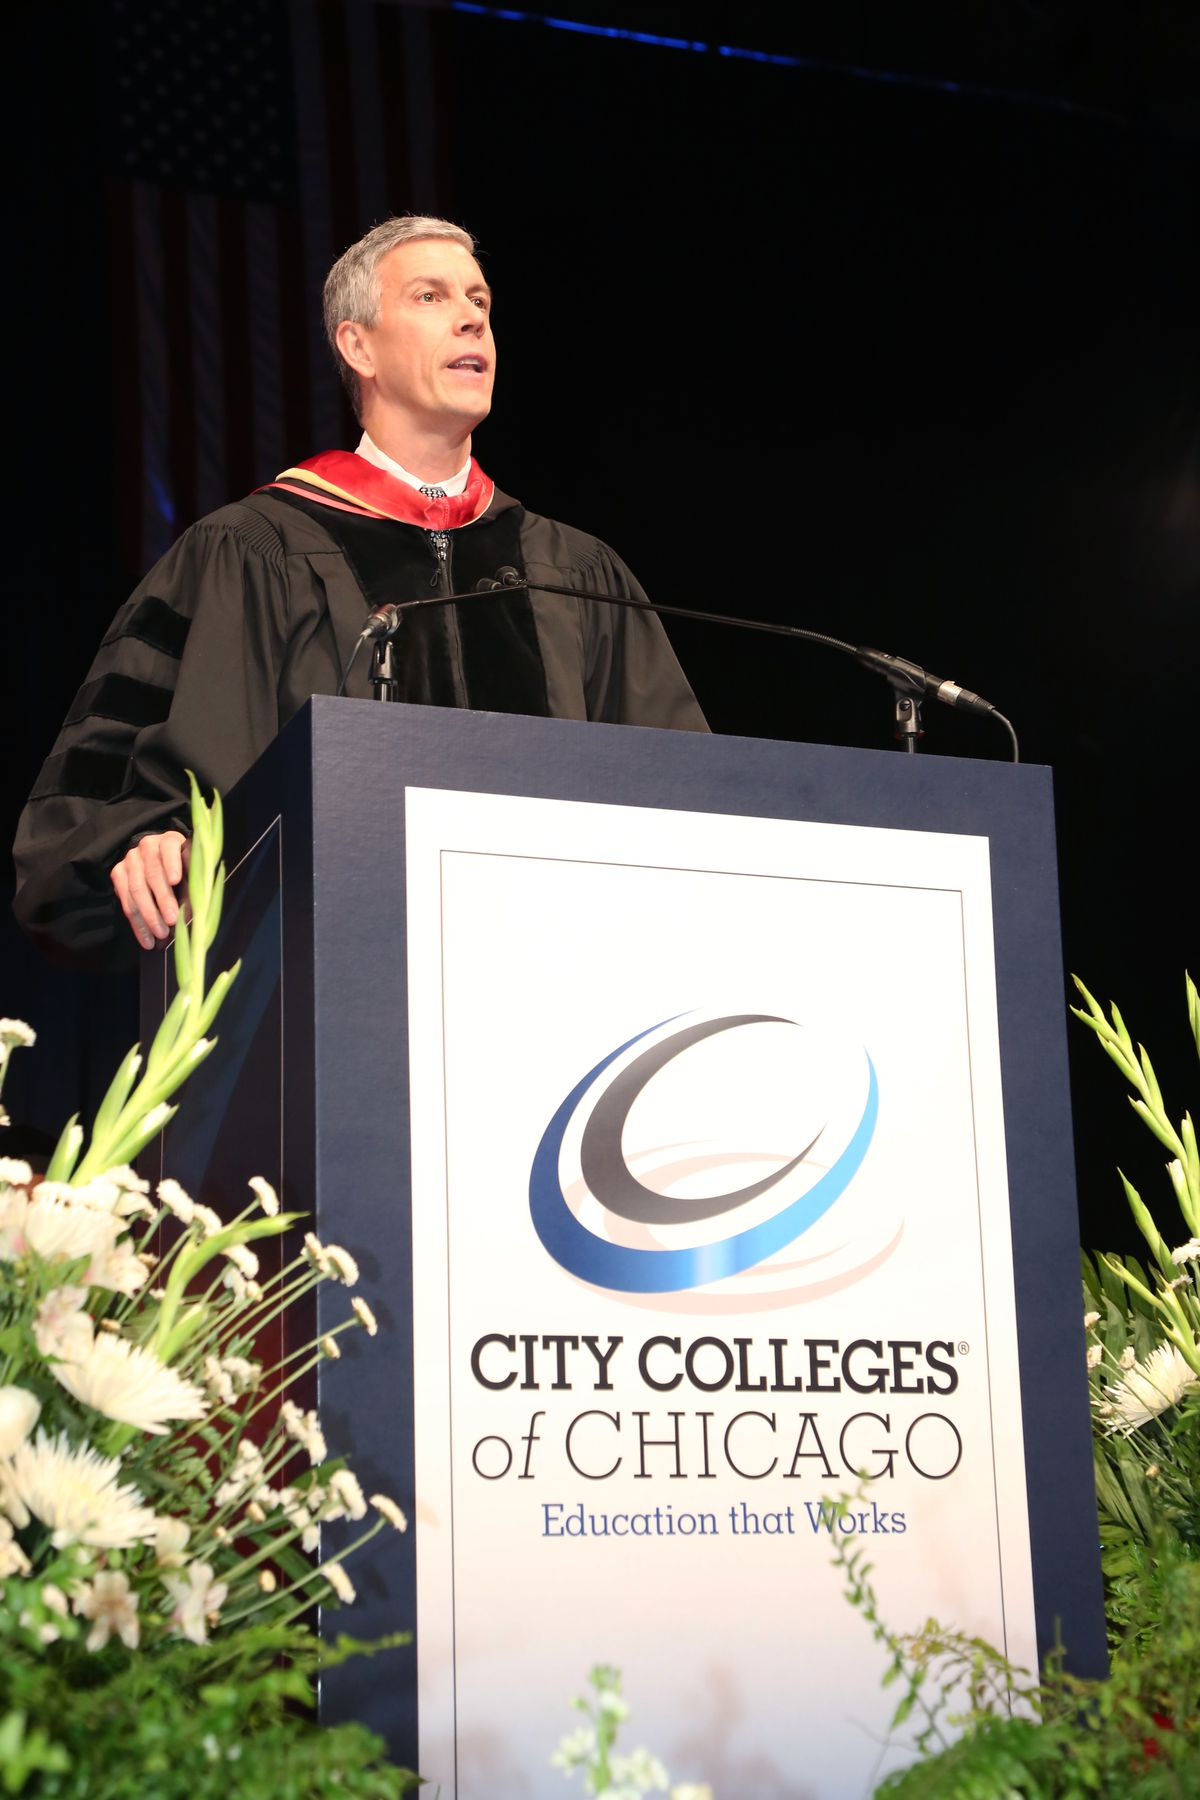 Former U.S. Education Secretary Arne Duncan gave the keynote speech at the City Colleges of Chicago commencement April 30 at the UIC Pavilion.   Provided photo